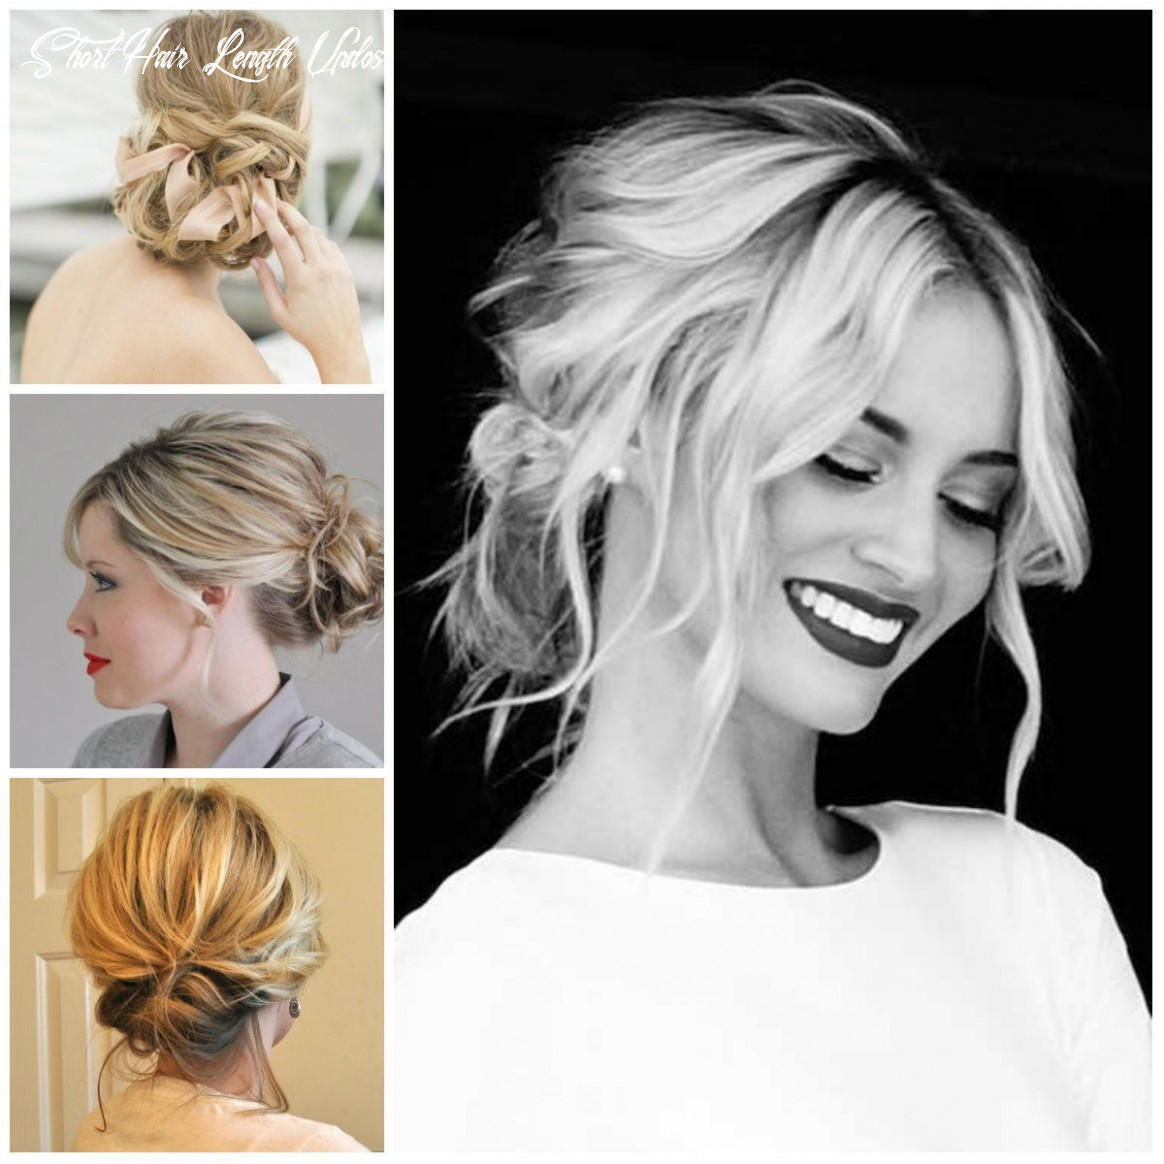 12 inconceivable women hairstyles easy ideas (with images